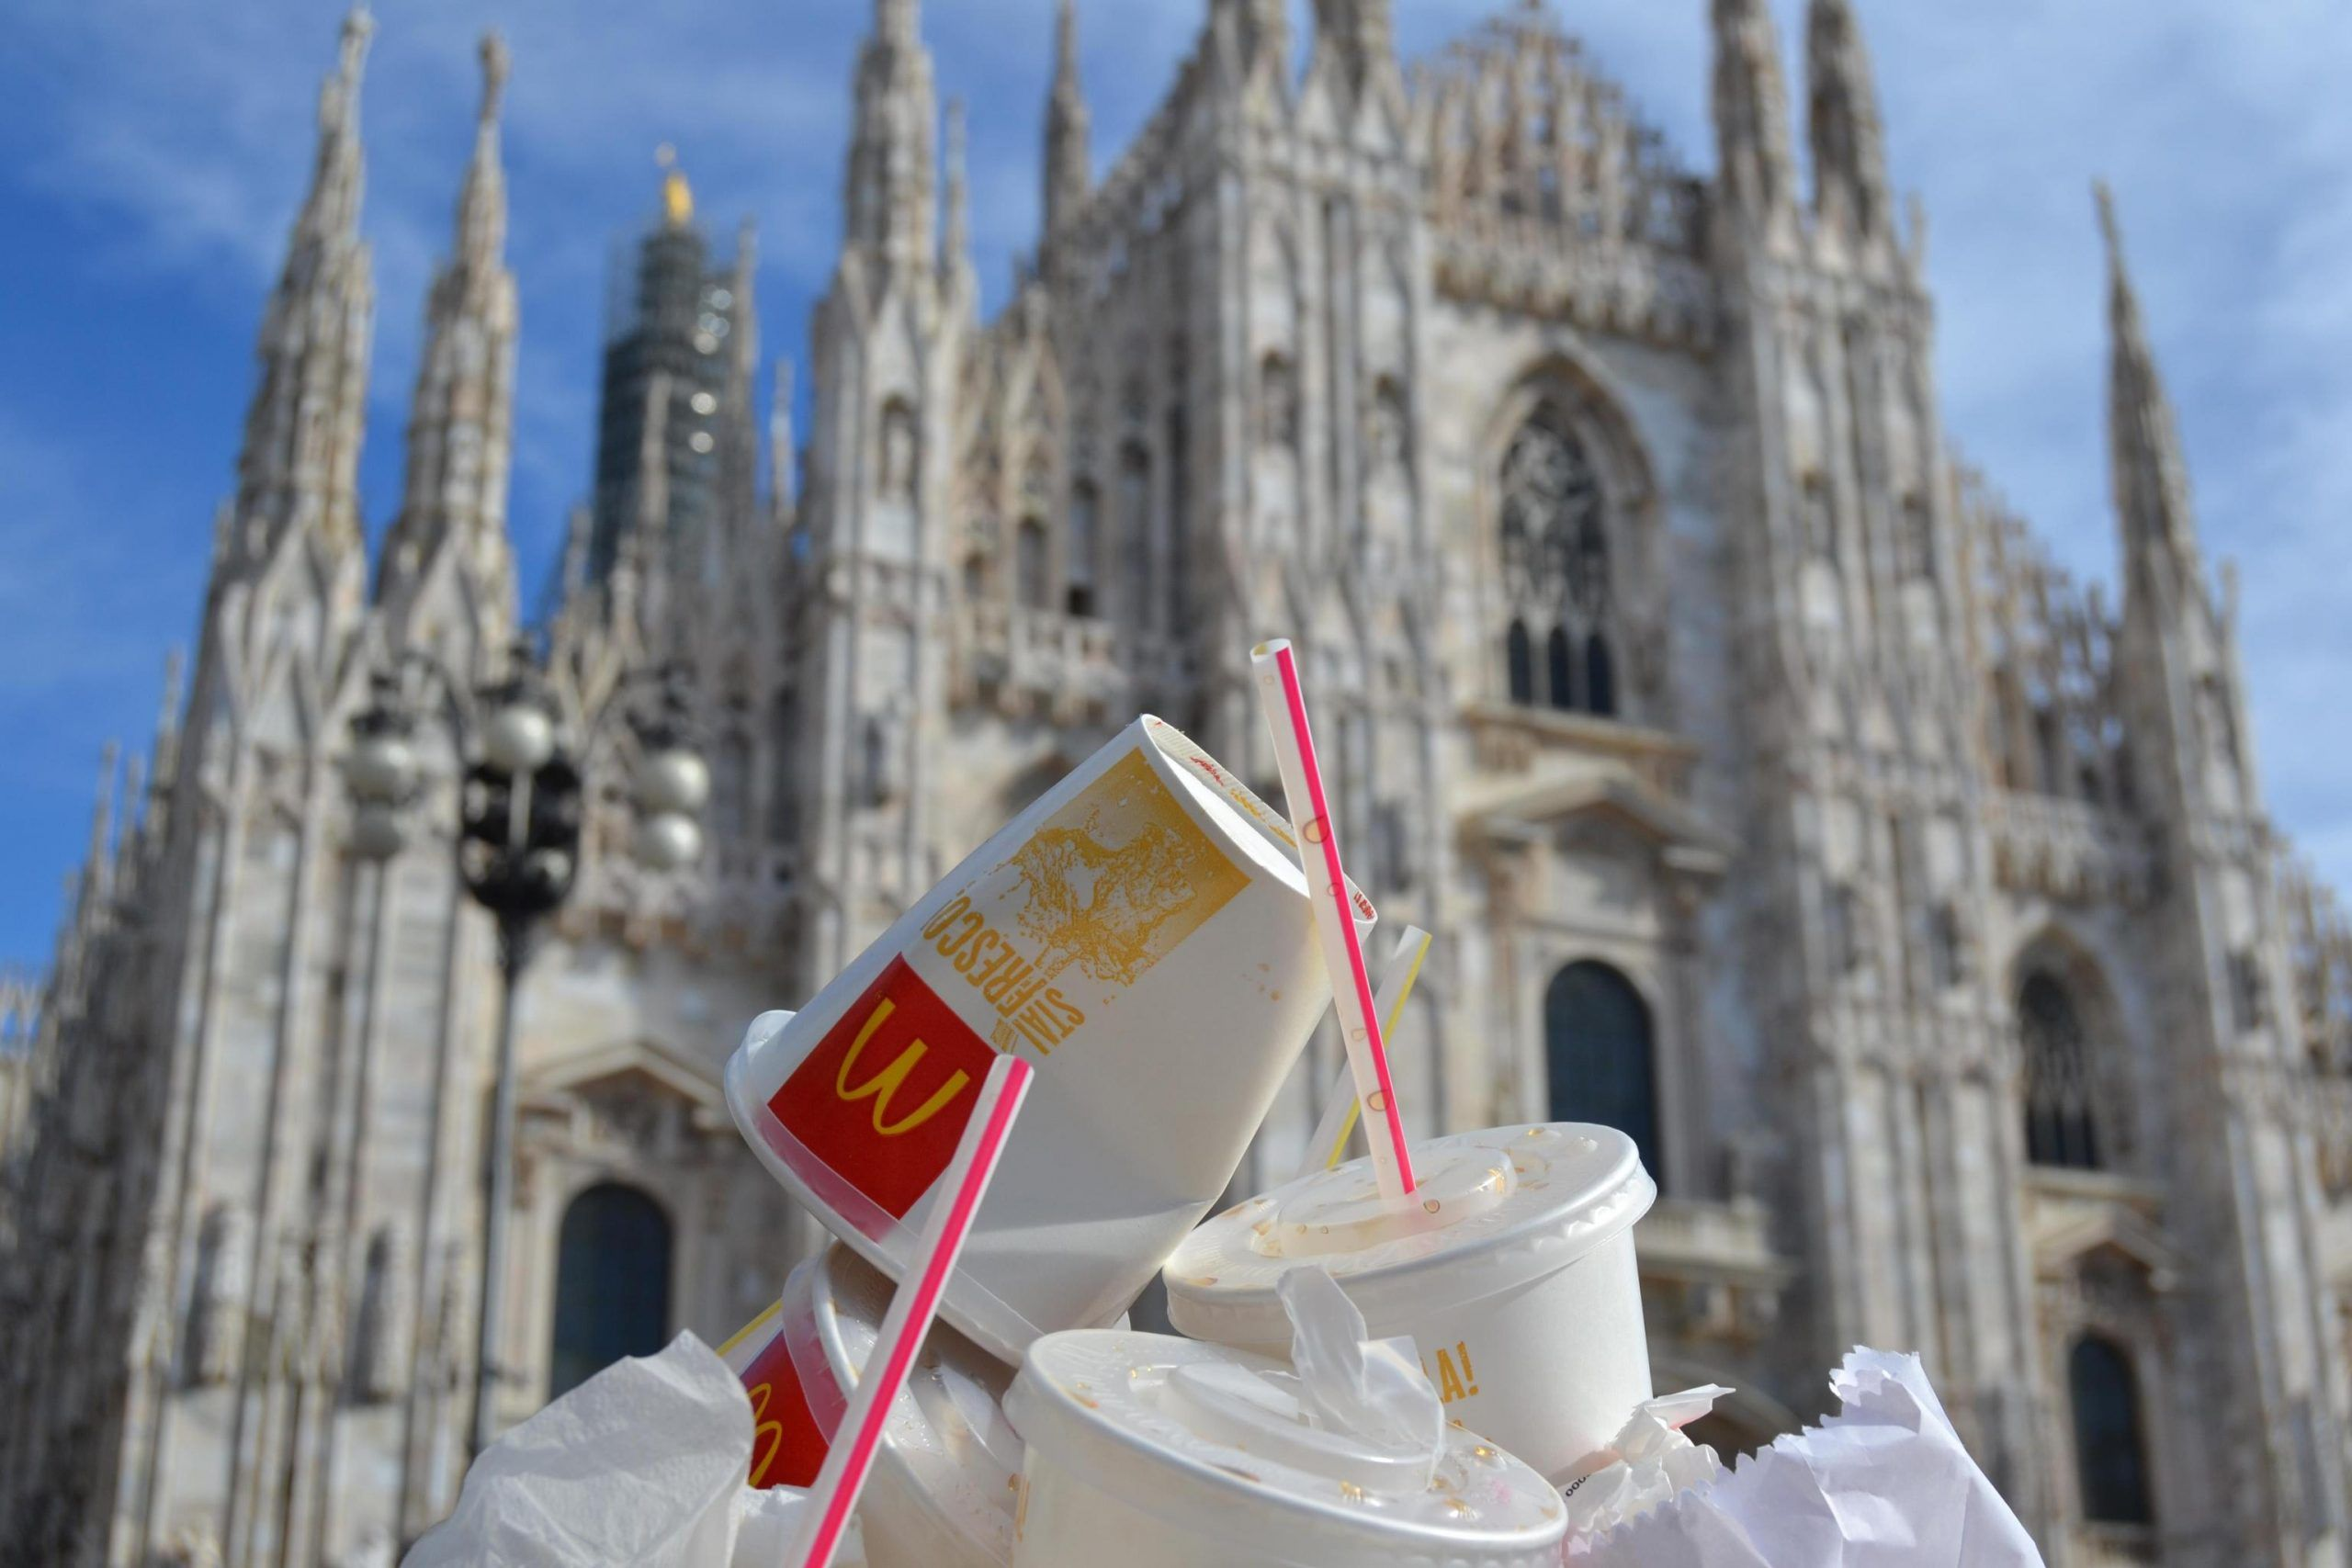 MC DONALD'S LAST DAY OF OPENING IN CENTRE OF MILAN